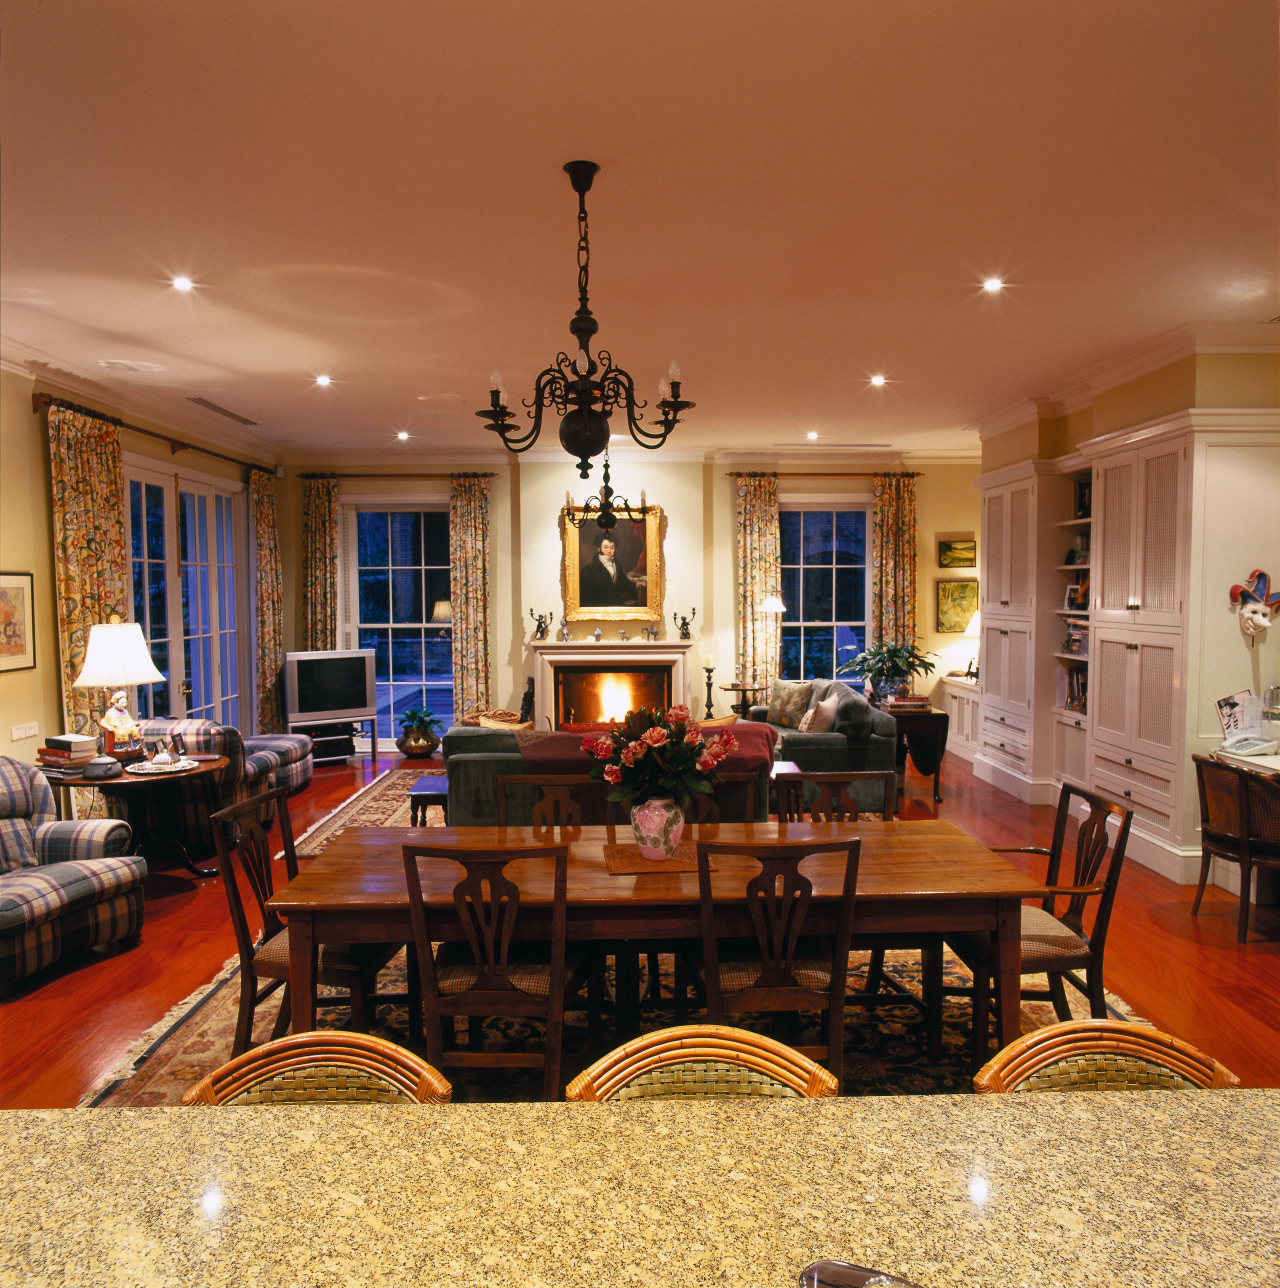 View of the dining & living area ceiling, dining room, estate, flooring, home, interior design, lighting, living room, real estate, room, table, brown, orange